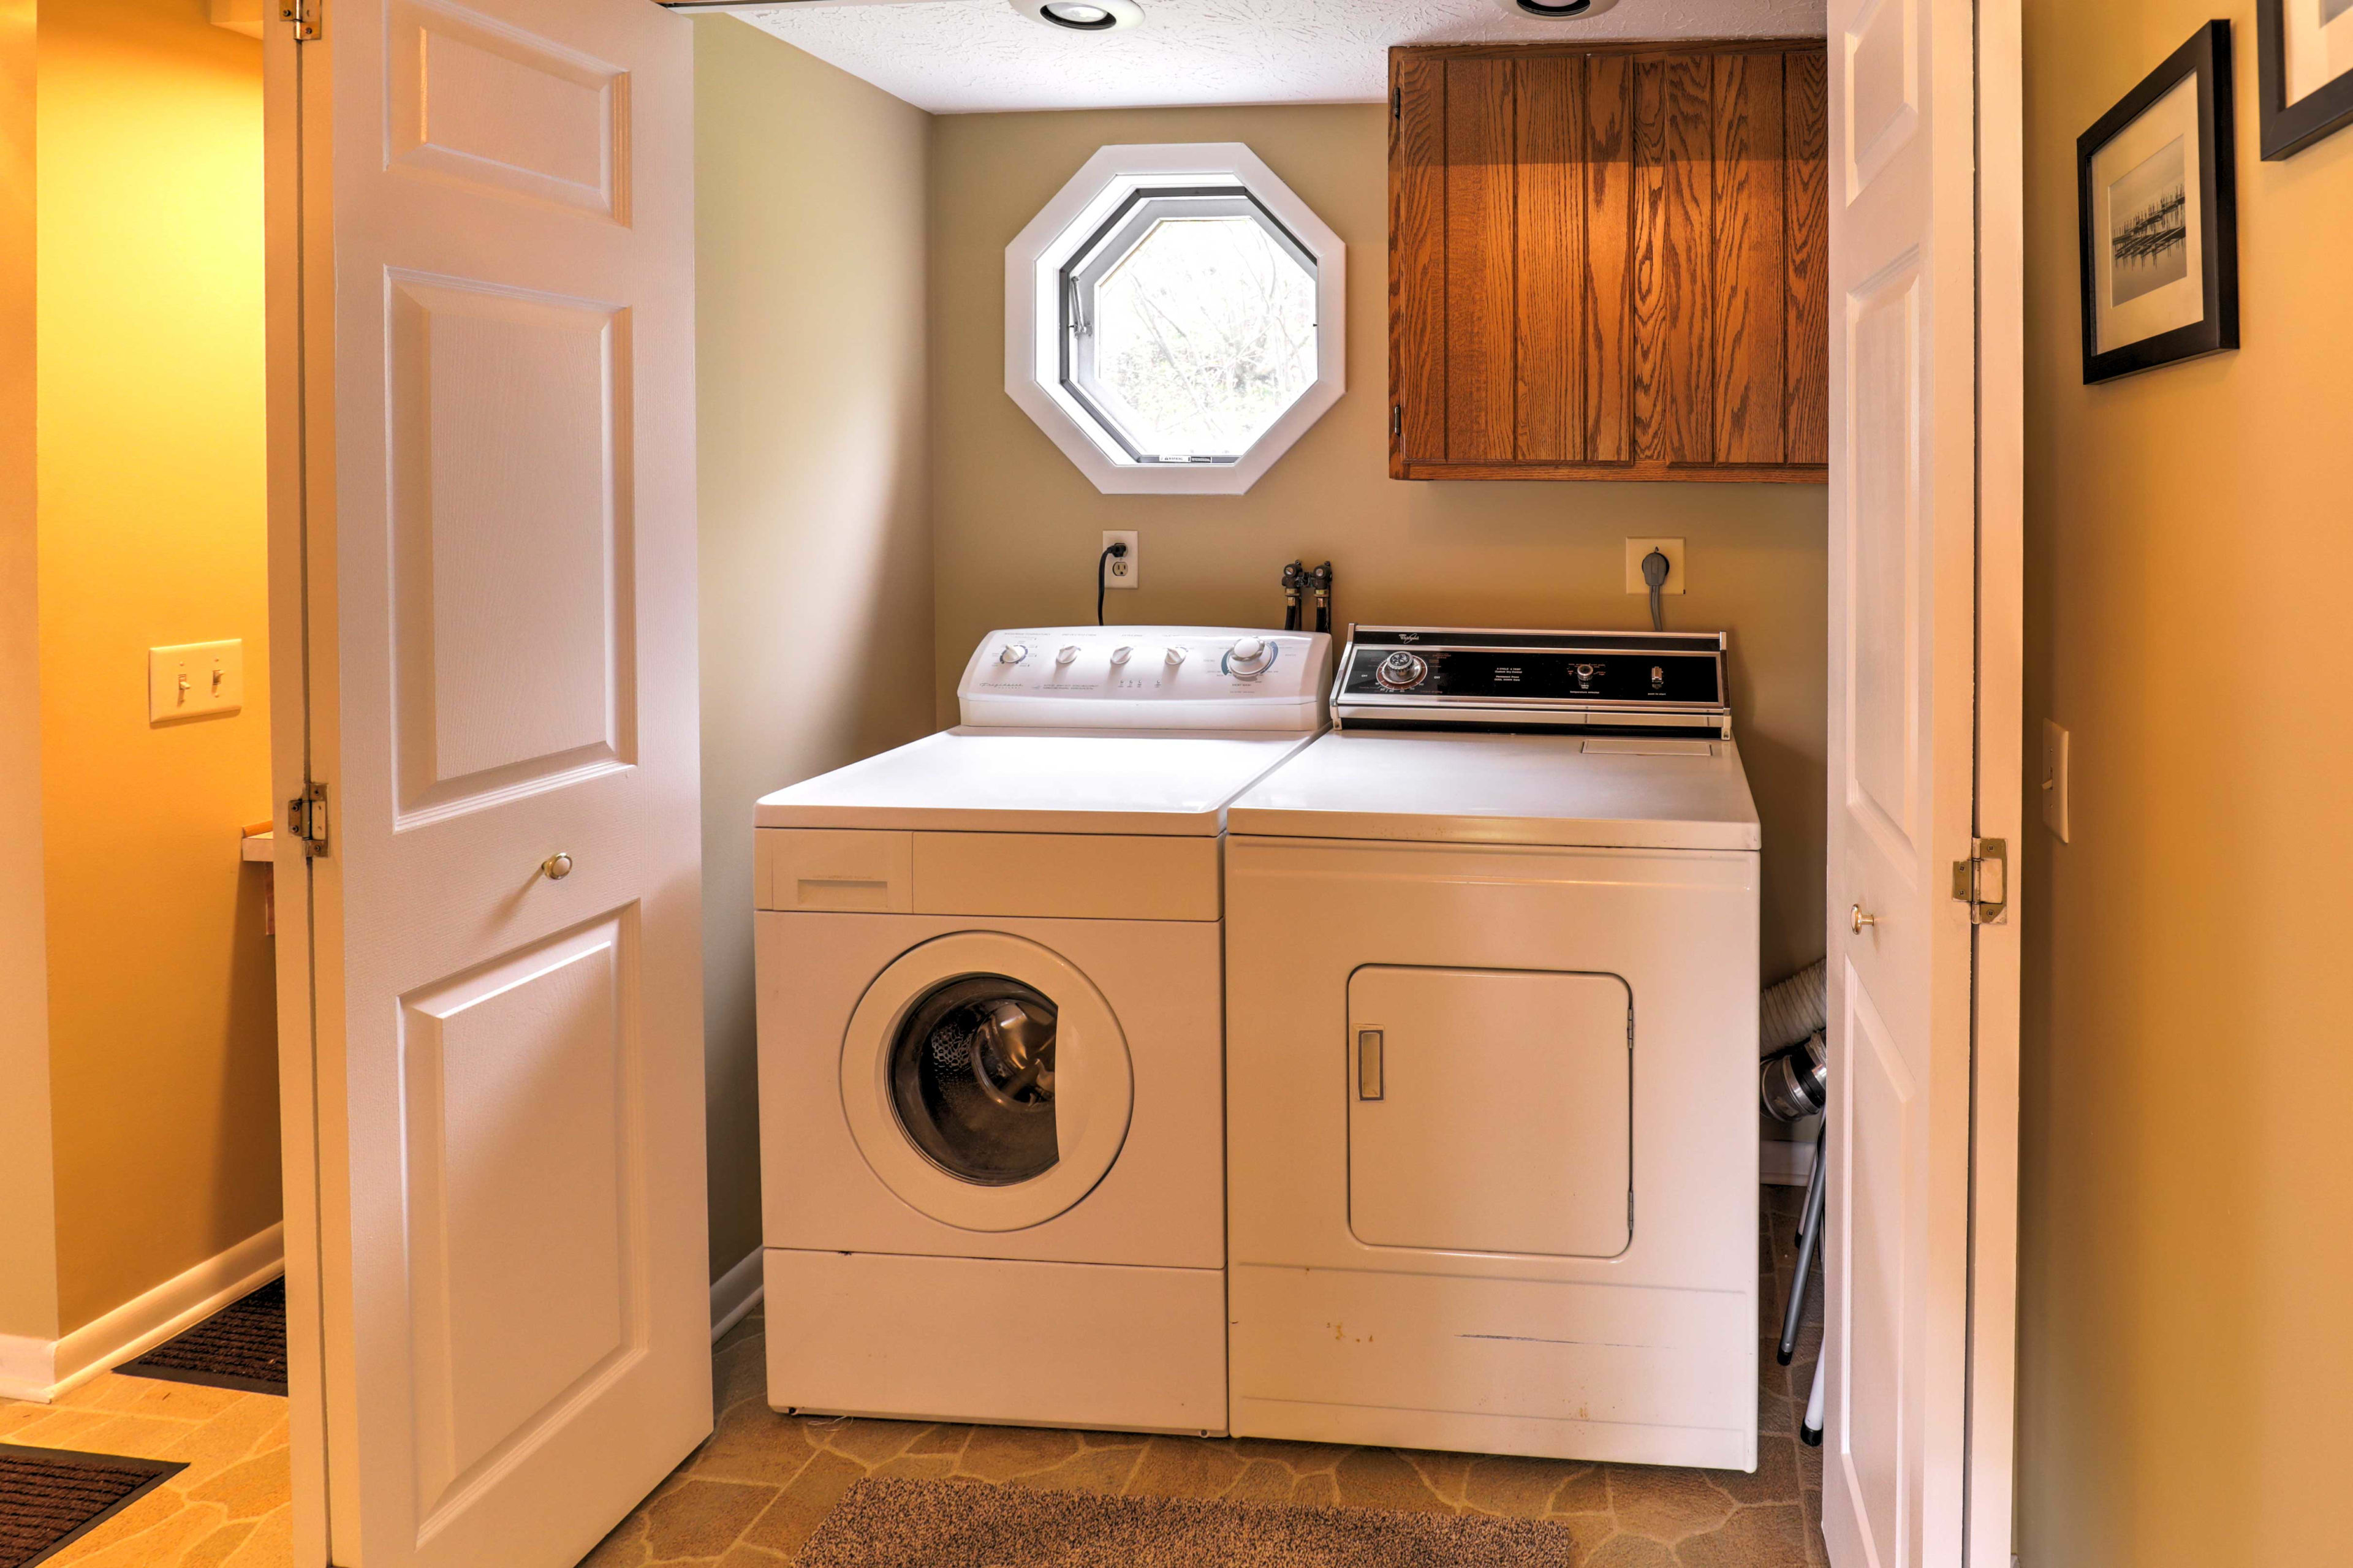 Laundry machines are available for your convenience.